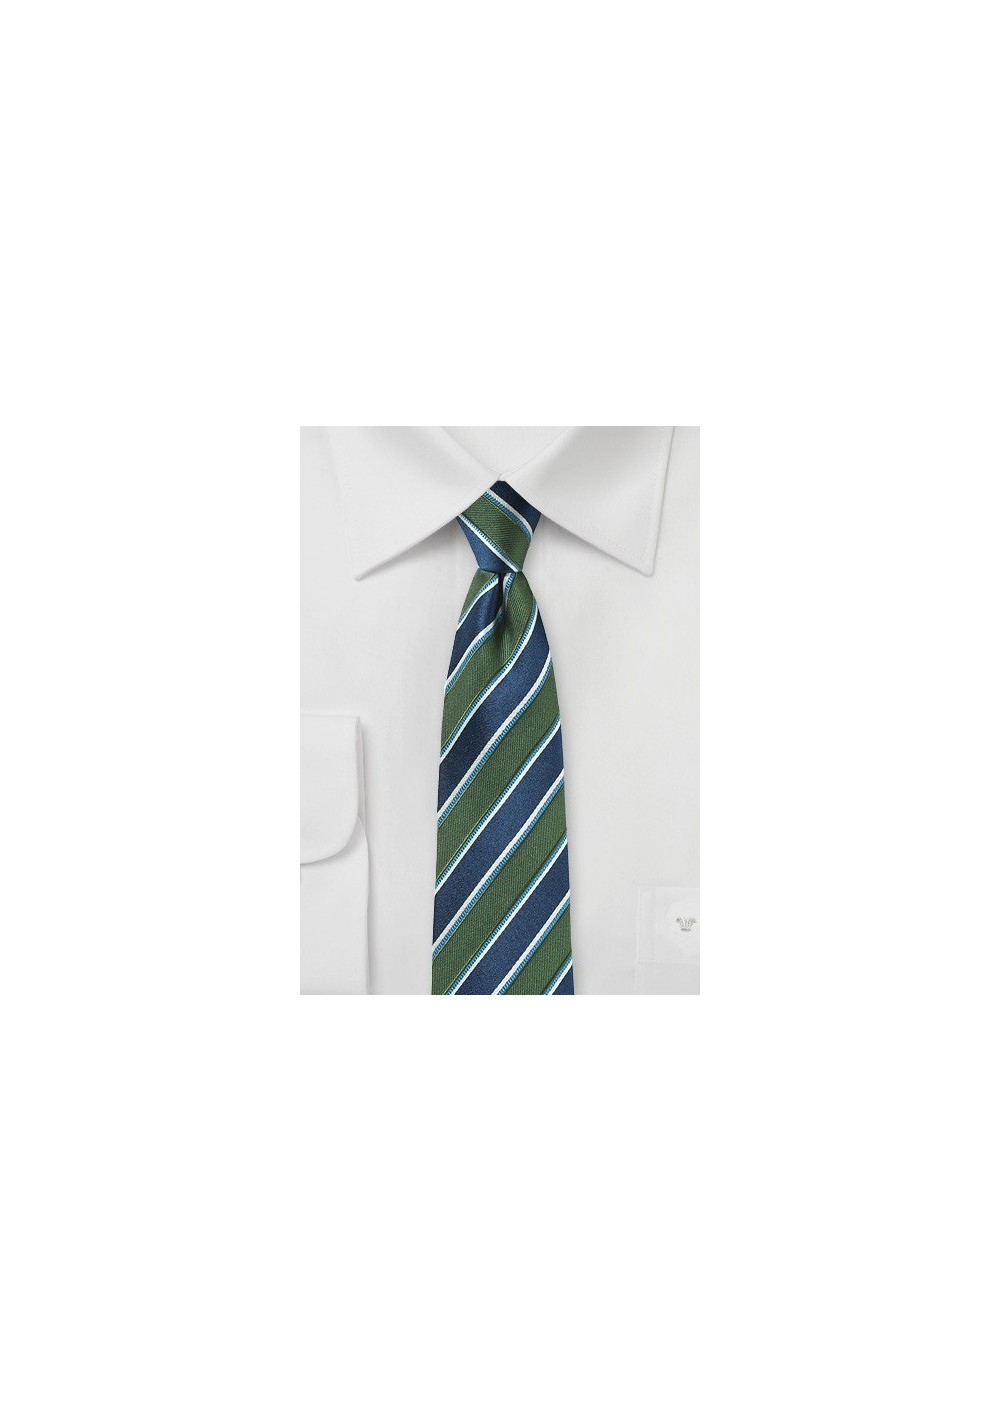 Awning Stripe Tie in Forest Green and Navy